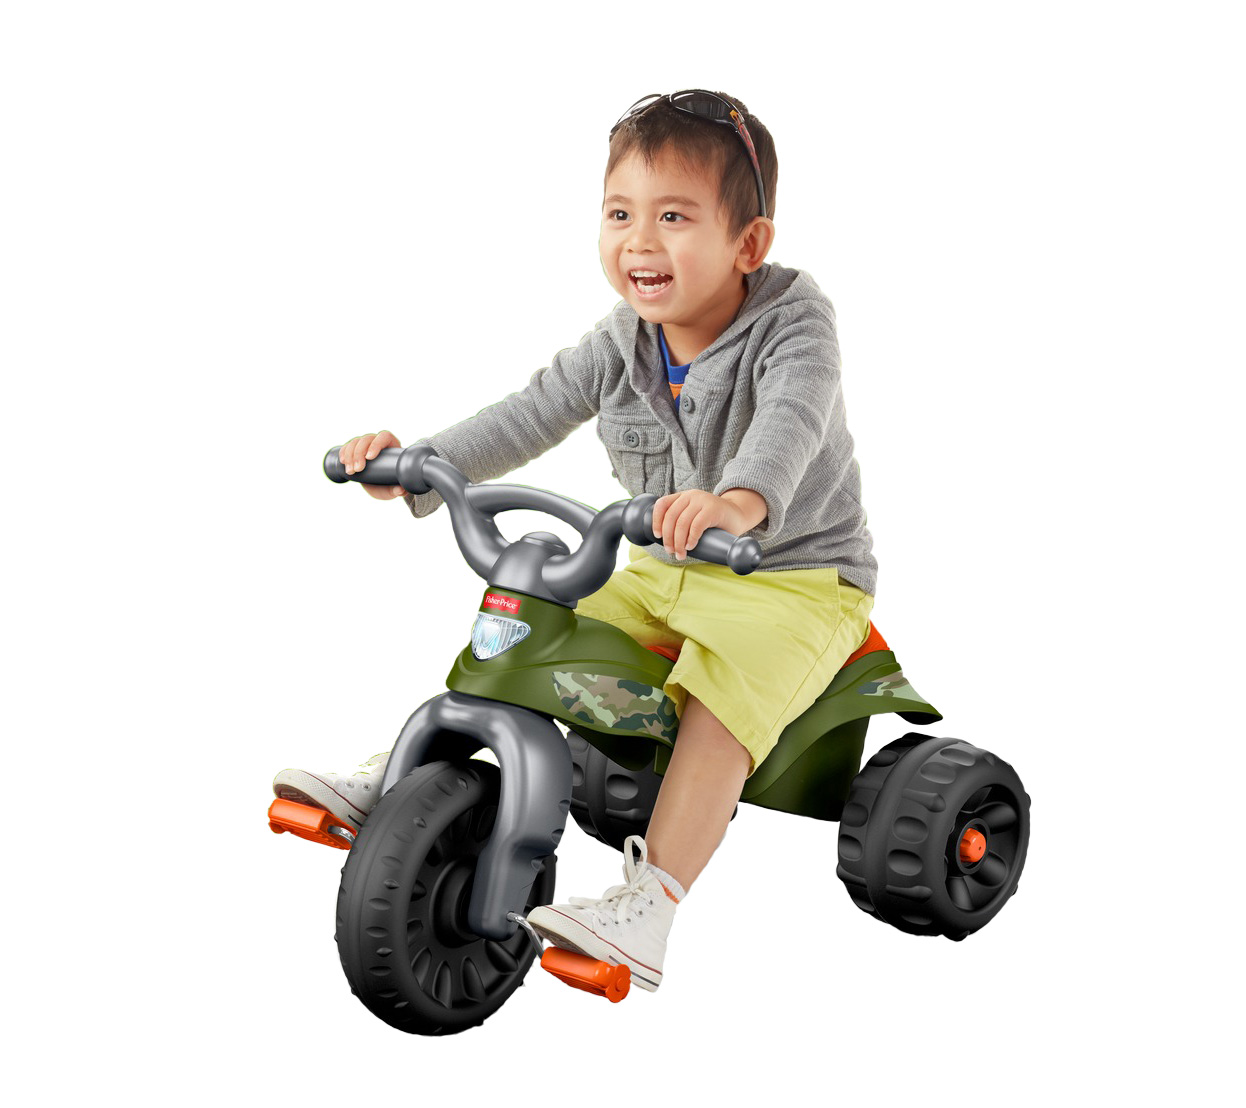 Fisher Price Tough Trike, Camo by Fisher-Price